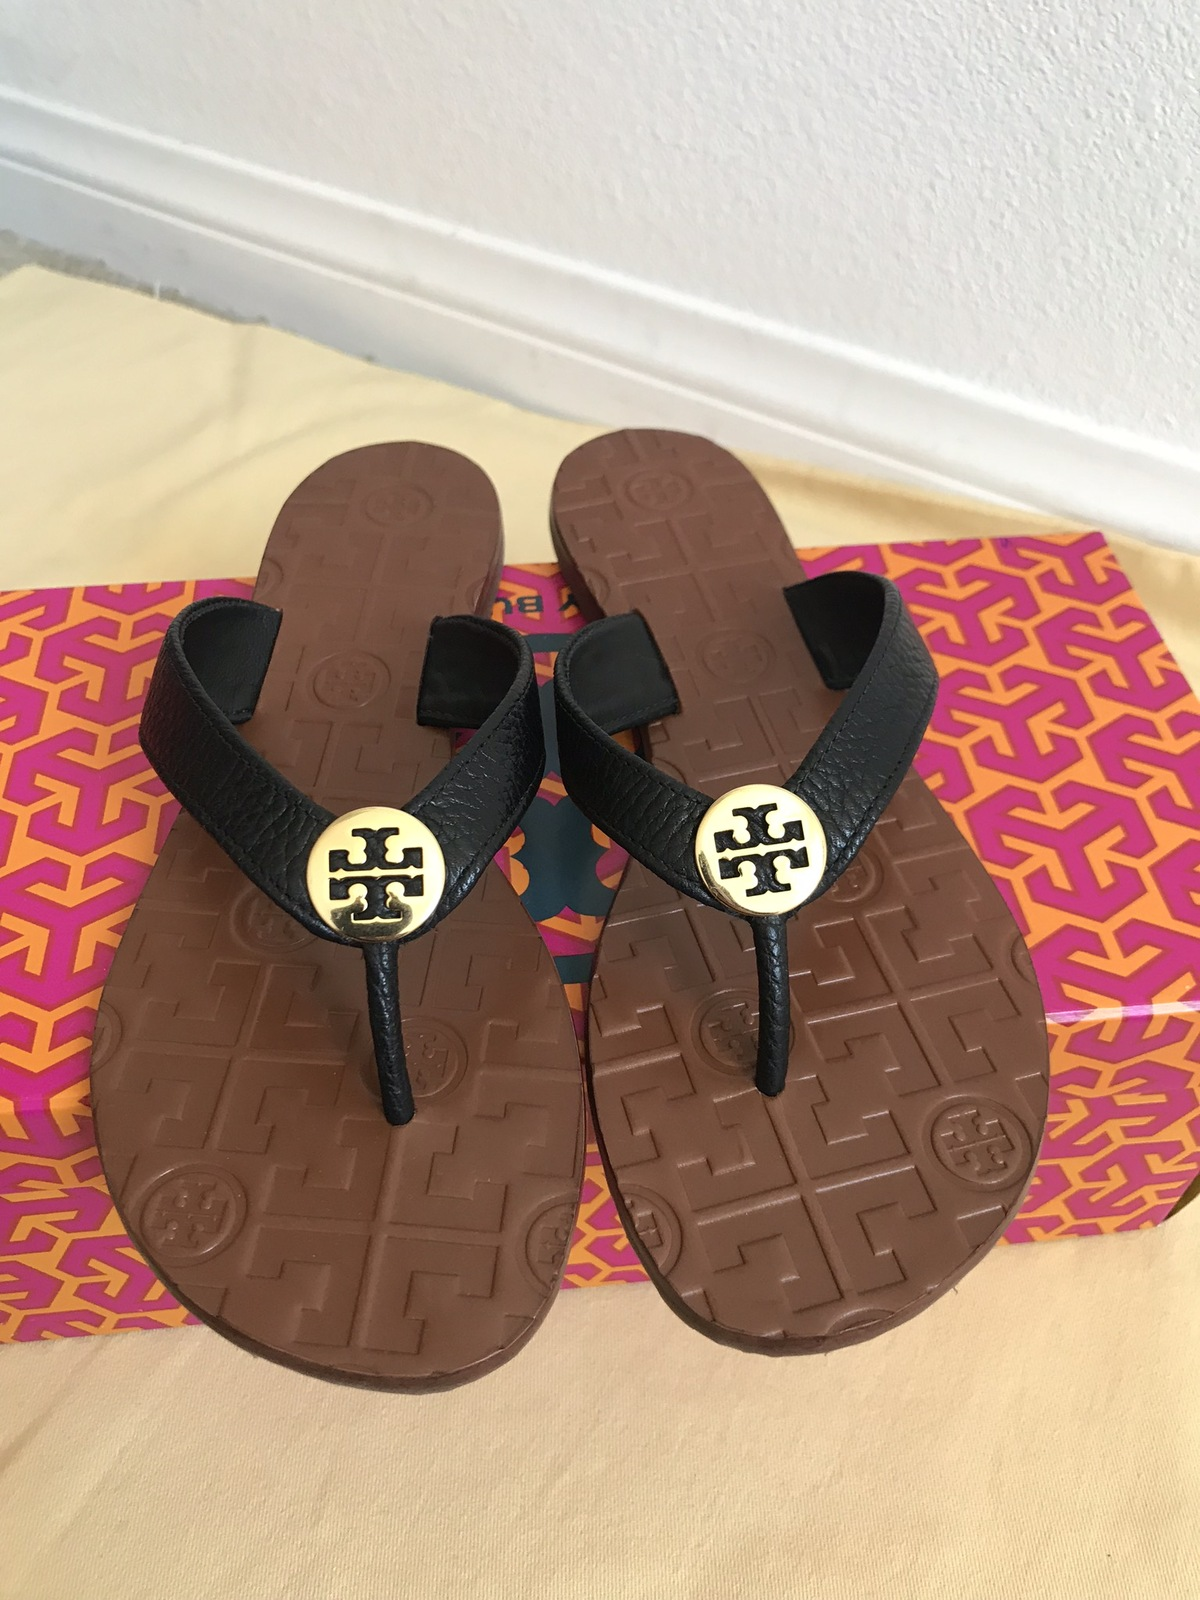 4b87bbc6b Img 1453. Img 1453. Previous. size 7M NIB TORY BURCH Black  Gold Thora Thong  Leather Sandals